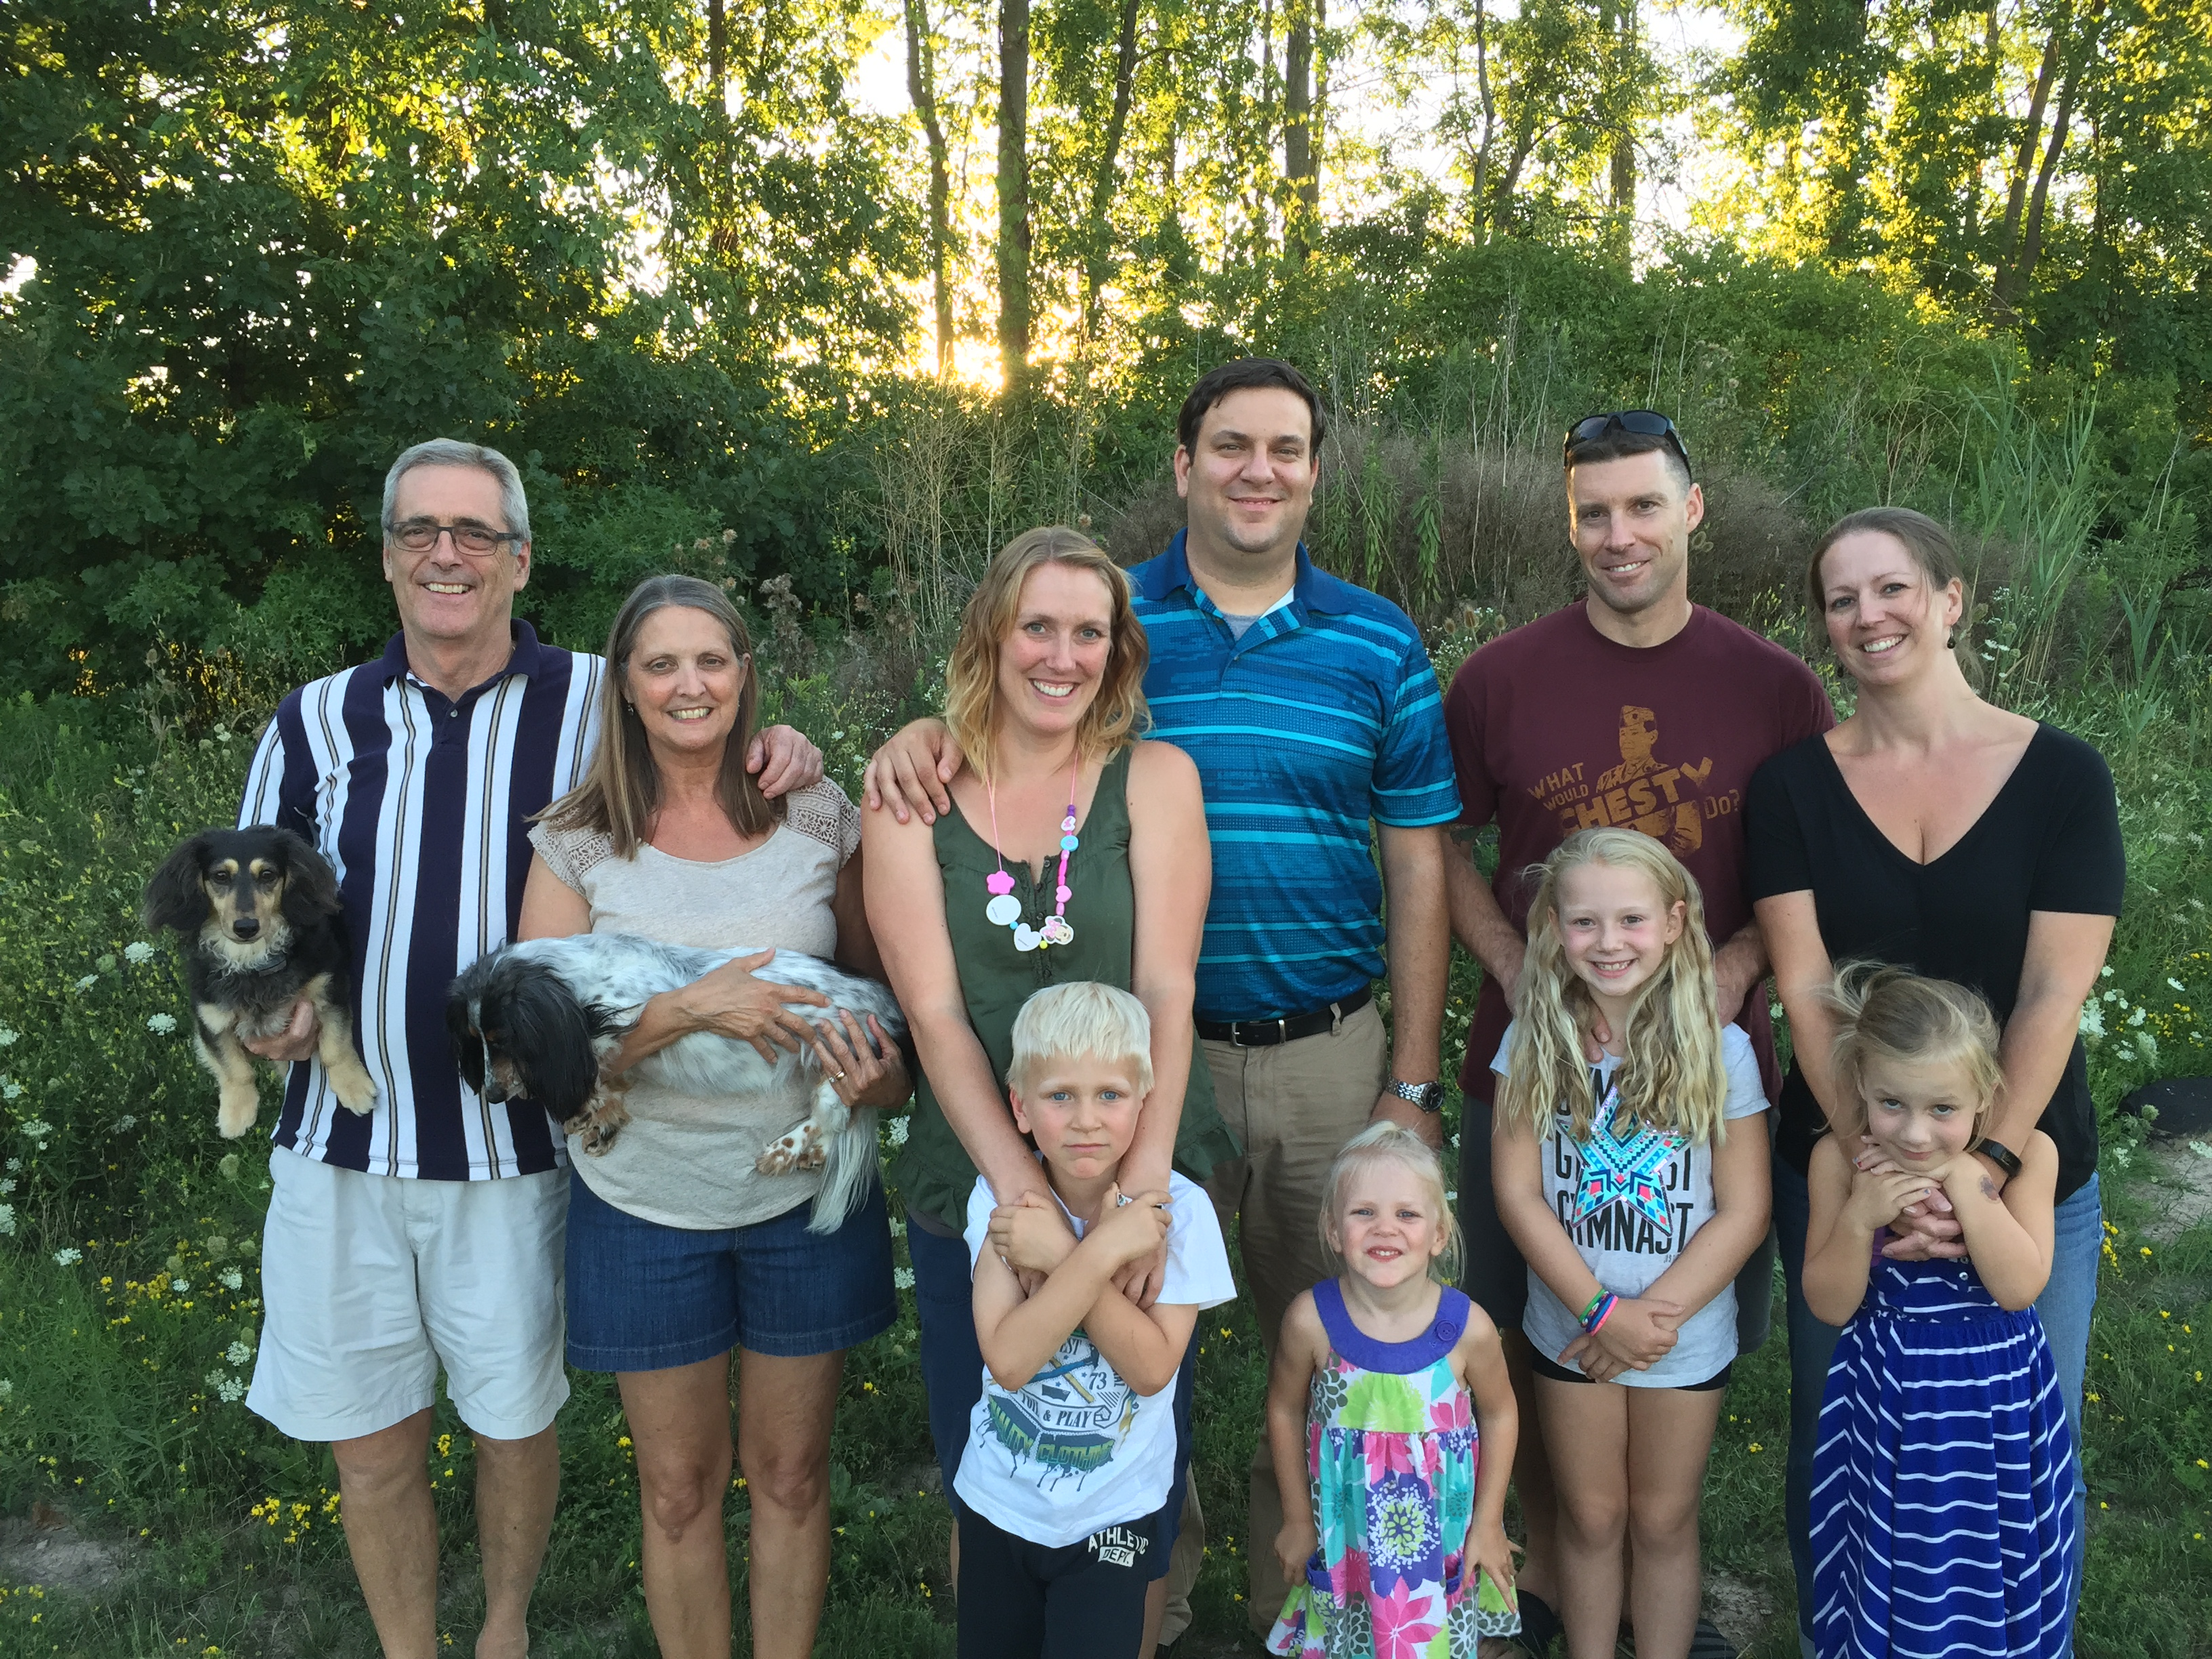 The Kemp family, from left: Ron, Ginny, daughter Christine Cappuzo, grandson Dominic, Christine's husband Marc, granddaughter Liana, son-in-law Ken Scholz, granddaughter Kaitlyn, daughter Amanda Scholz, granddaughter Kara.